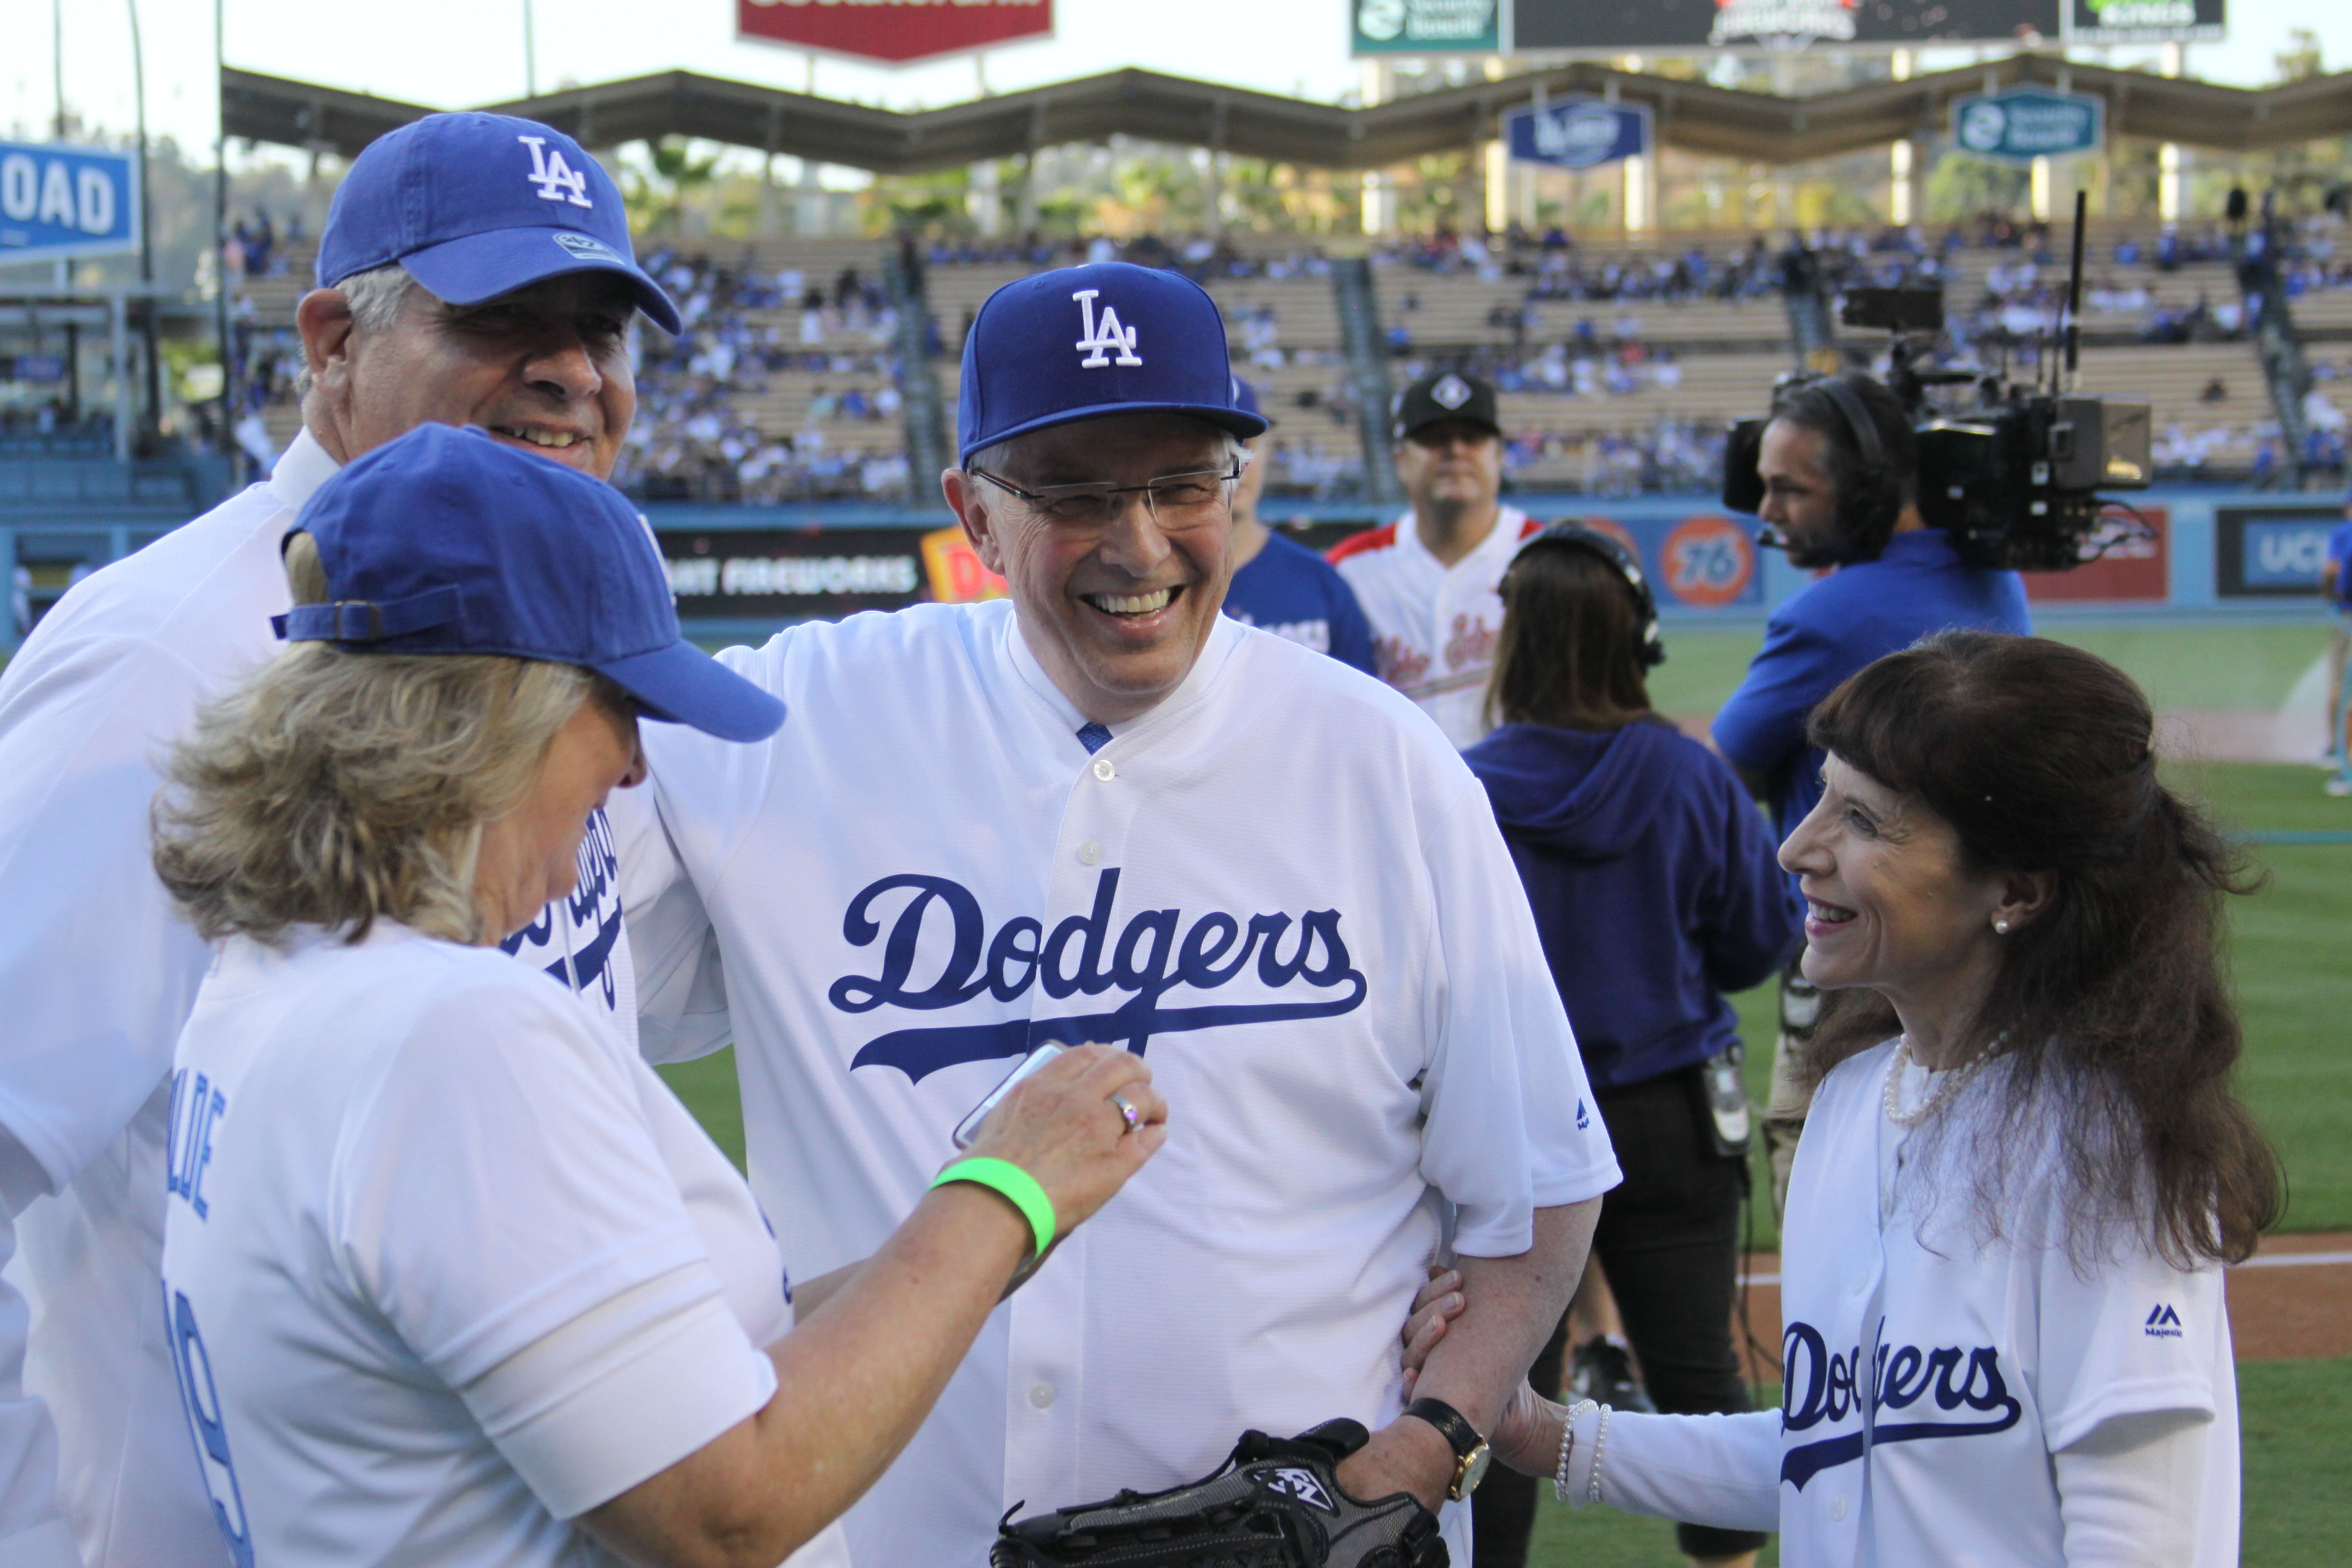 Elder Neil L. Andersen and his wife, Sister Kathy Andersen, greet Sister Cheryl Wilde and Elder Gary Wilde, an Area Seventy, after Elder Andersen threw the first pitch at Dodger Stadium on July 19, 2019.